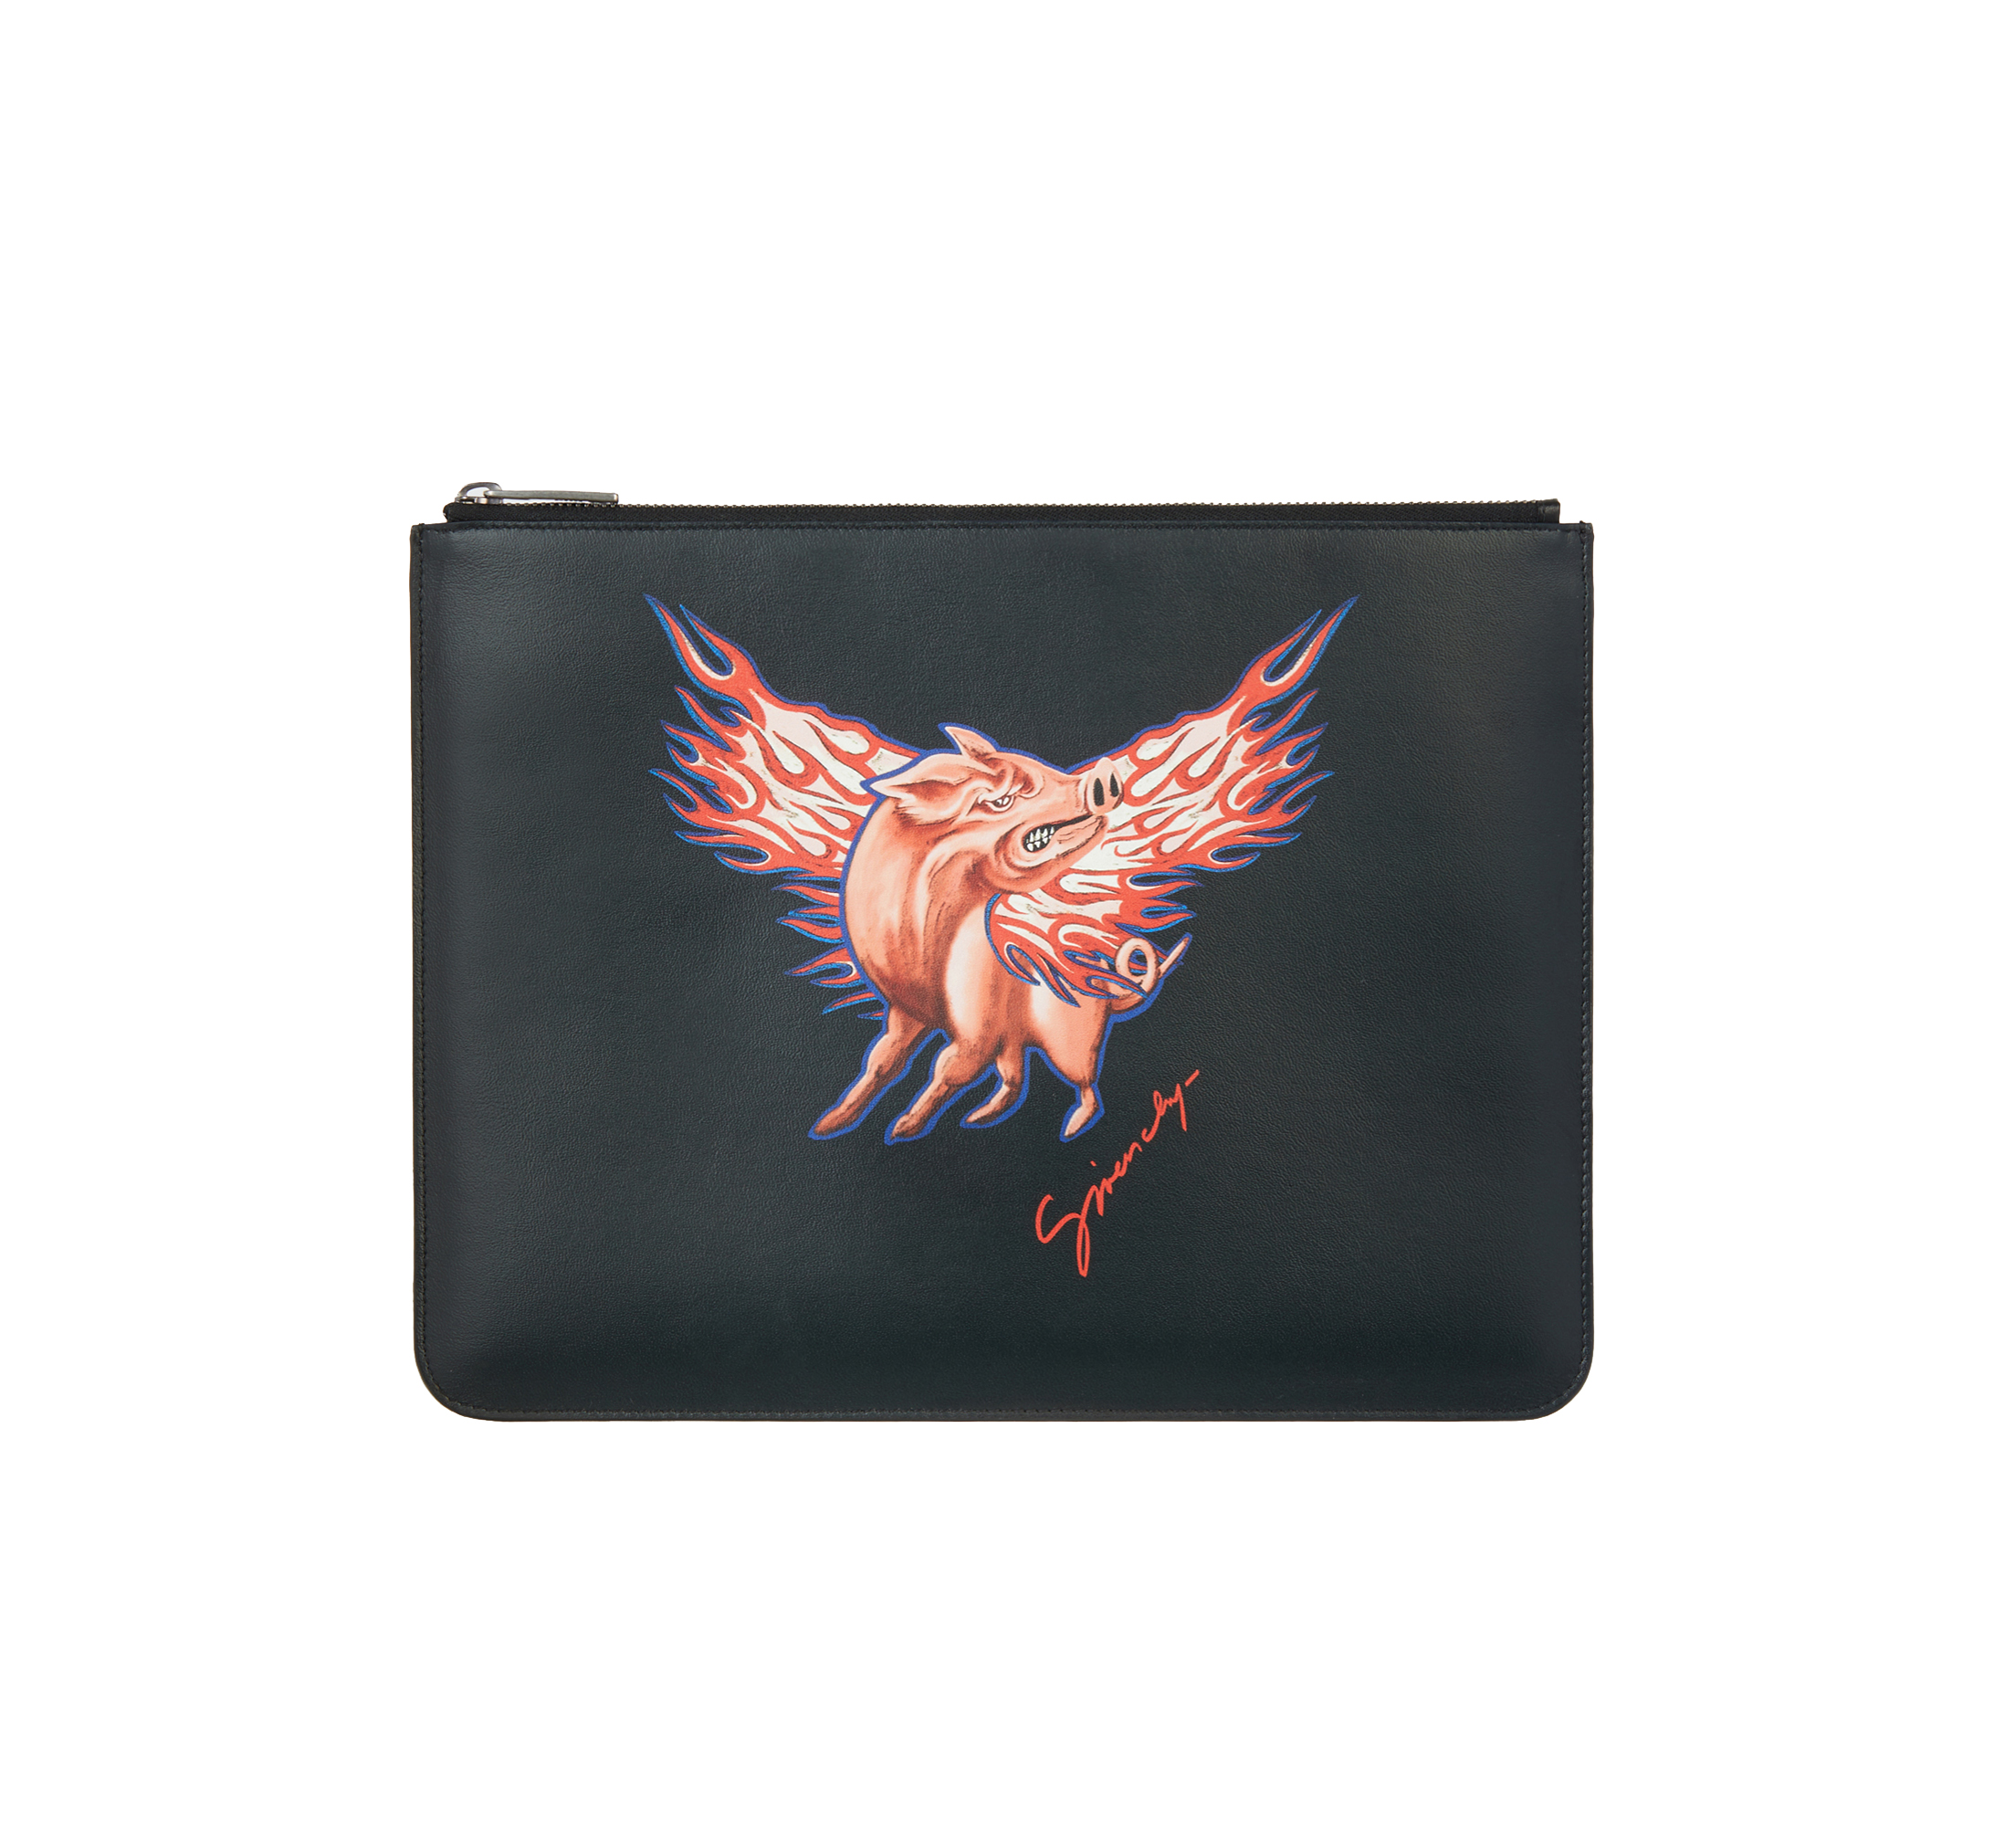 Givenchy 'Flying Pig' Large Leather Zipped Pouch